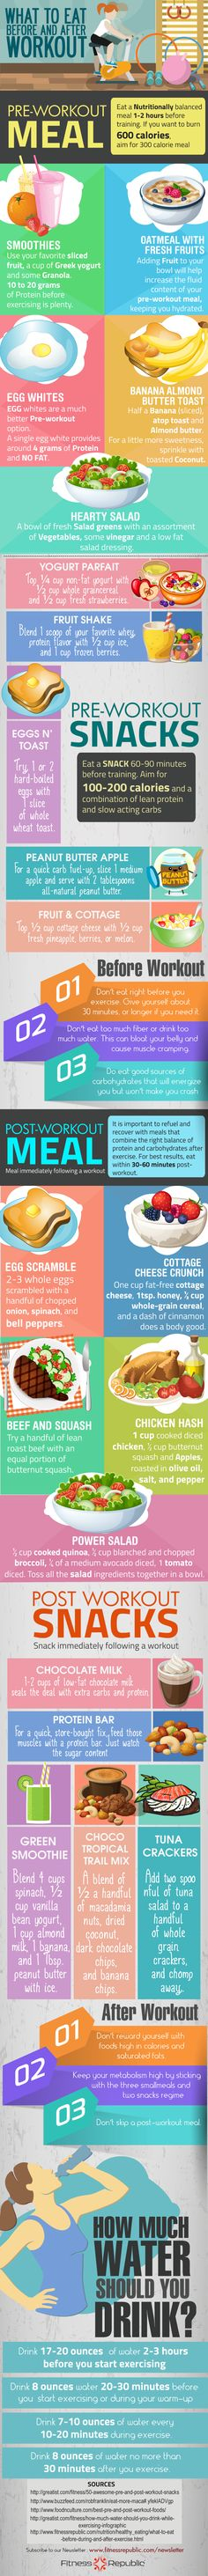 What to Eat Before and After Workout | Fitness Republic